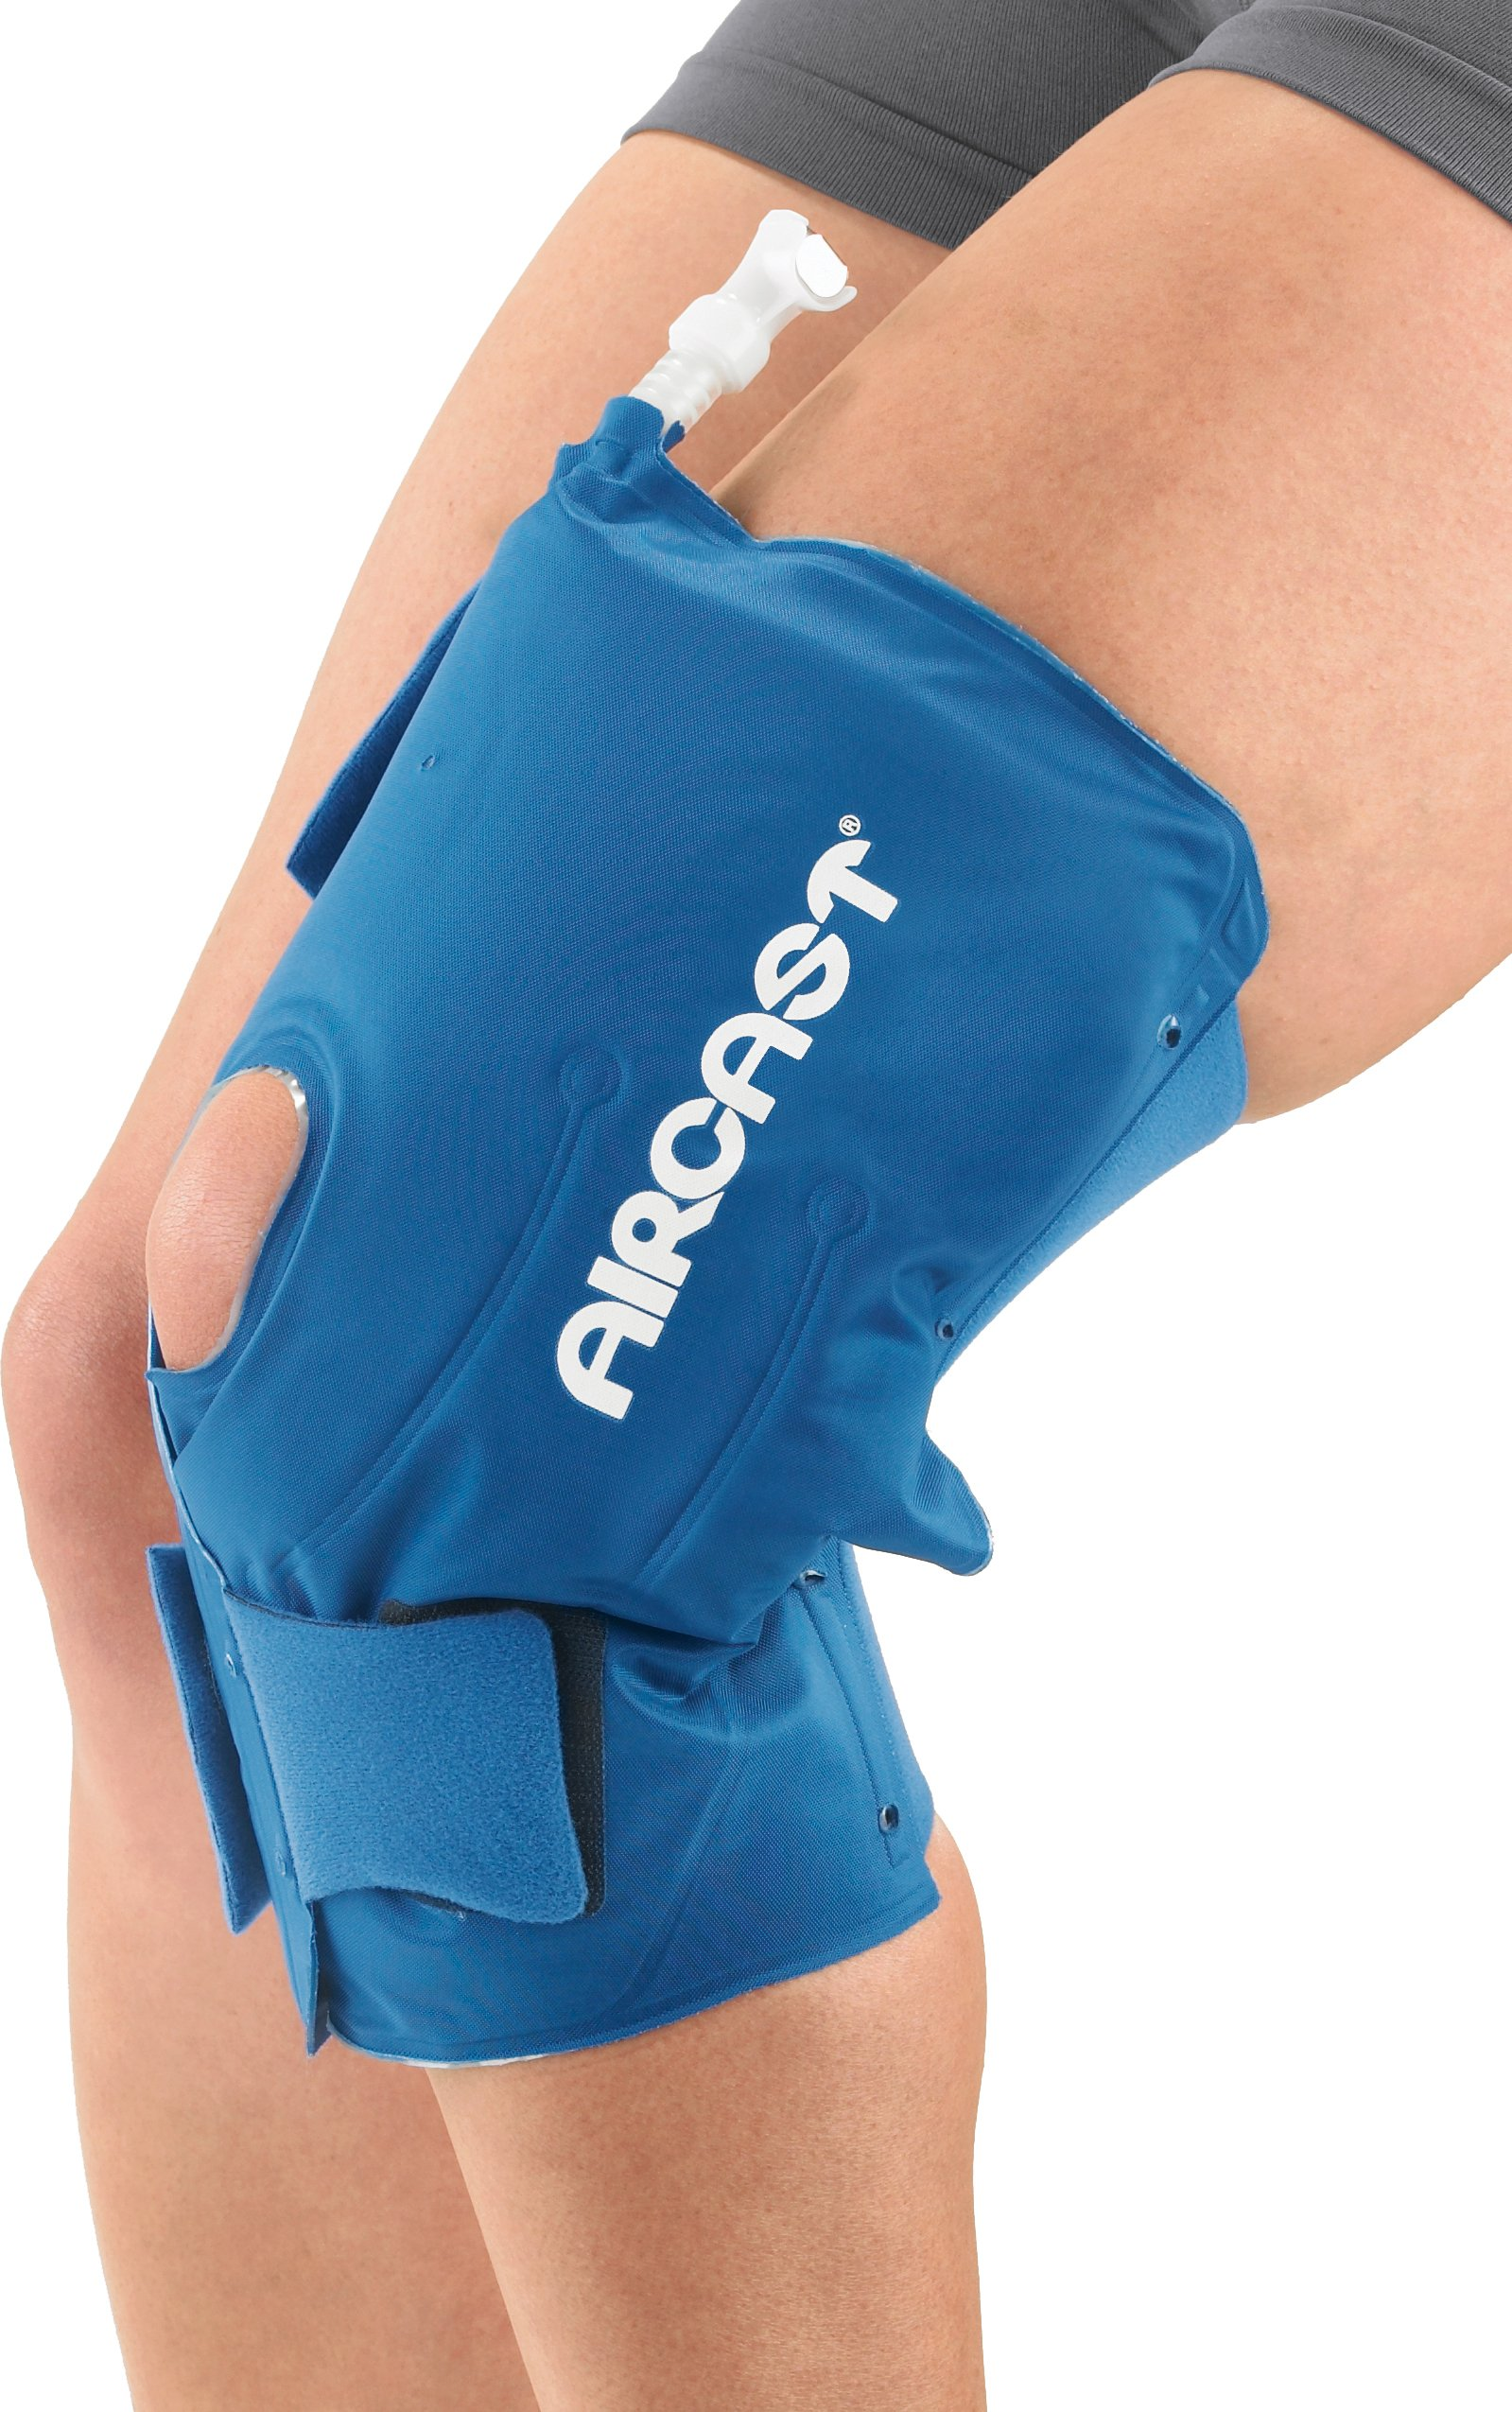 DonJoy Aircast Cryo/Cuff Cold Therapy: Knee Cryo/Cuff, Large by DonJoy